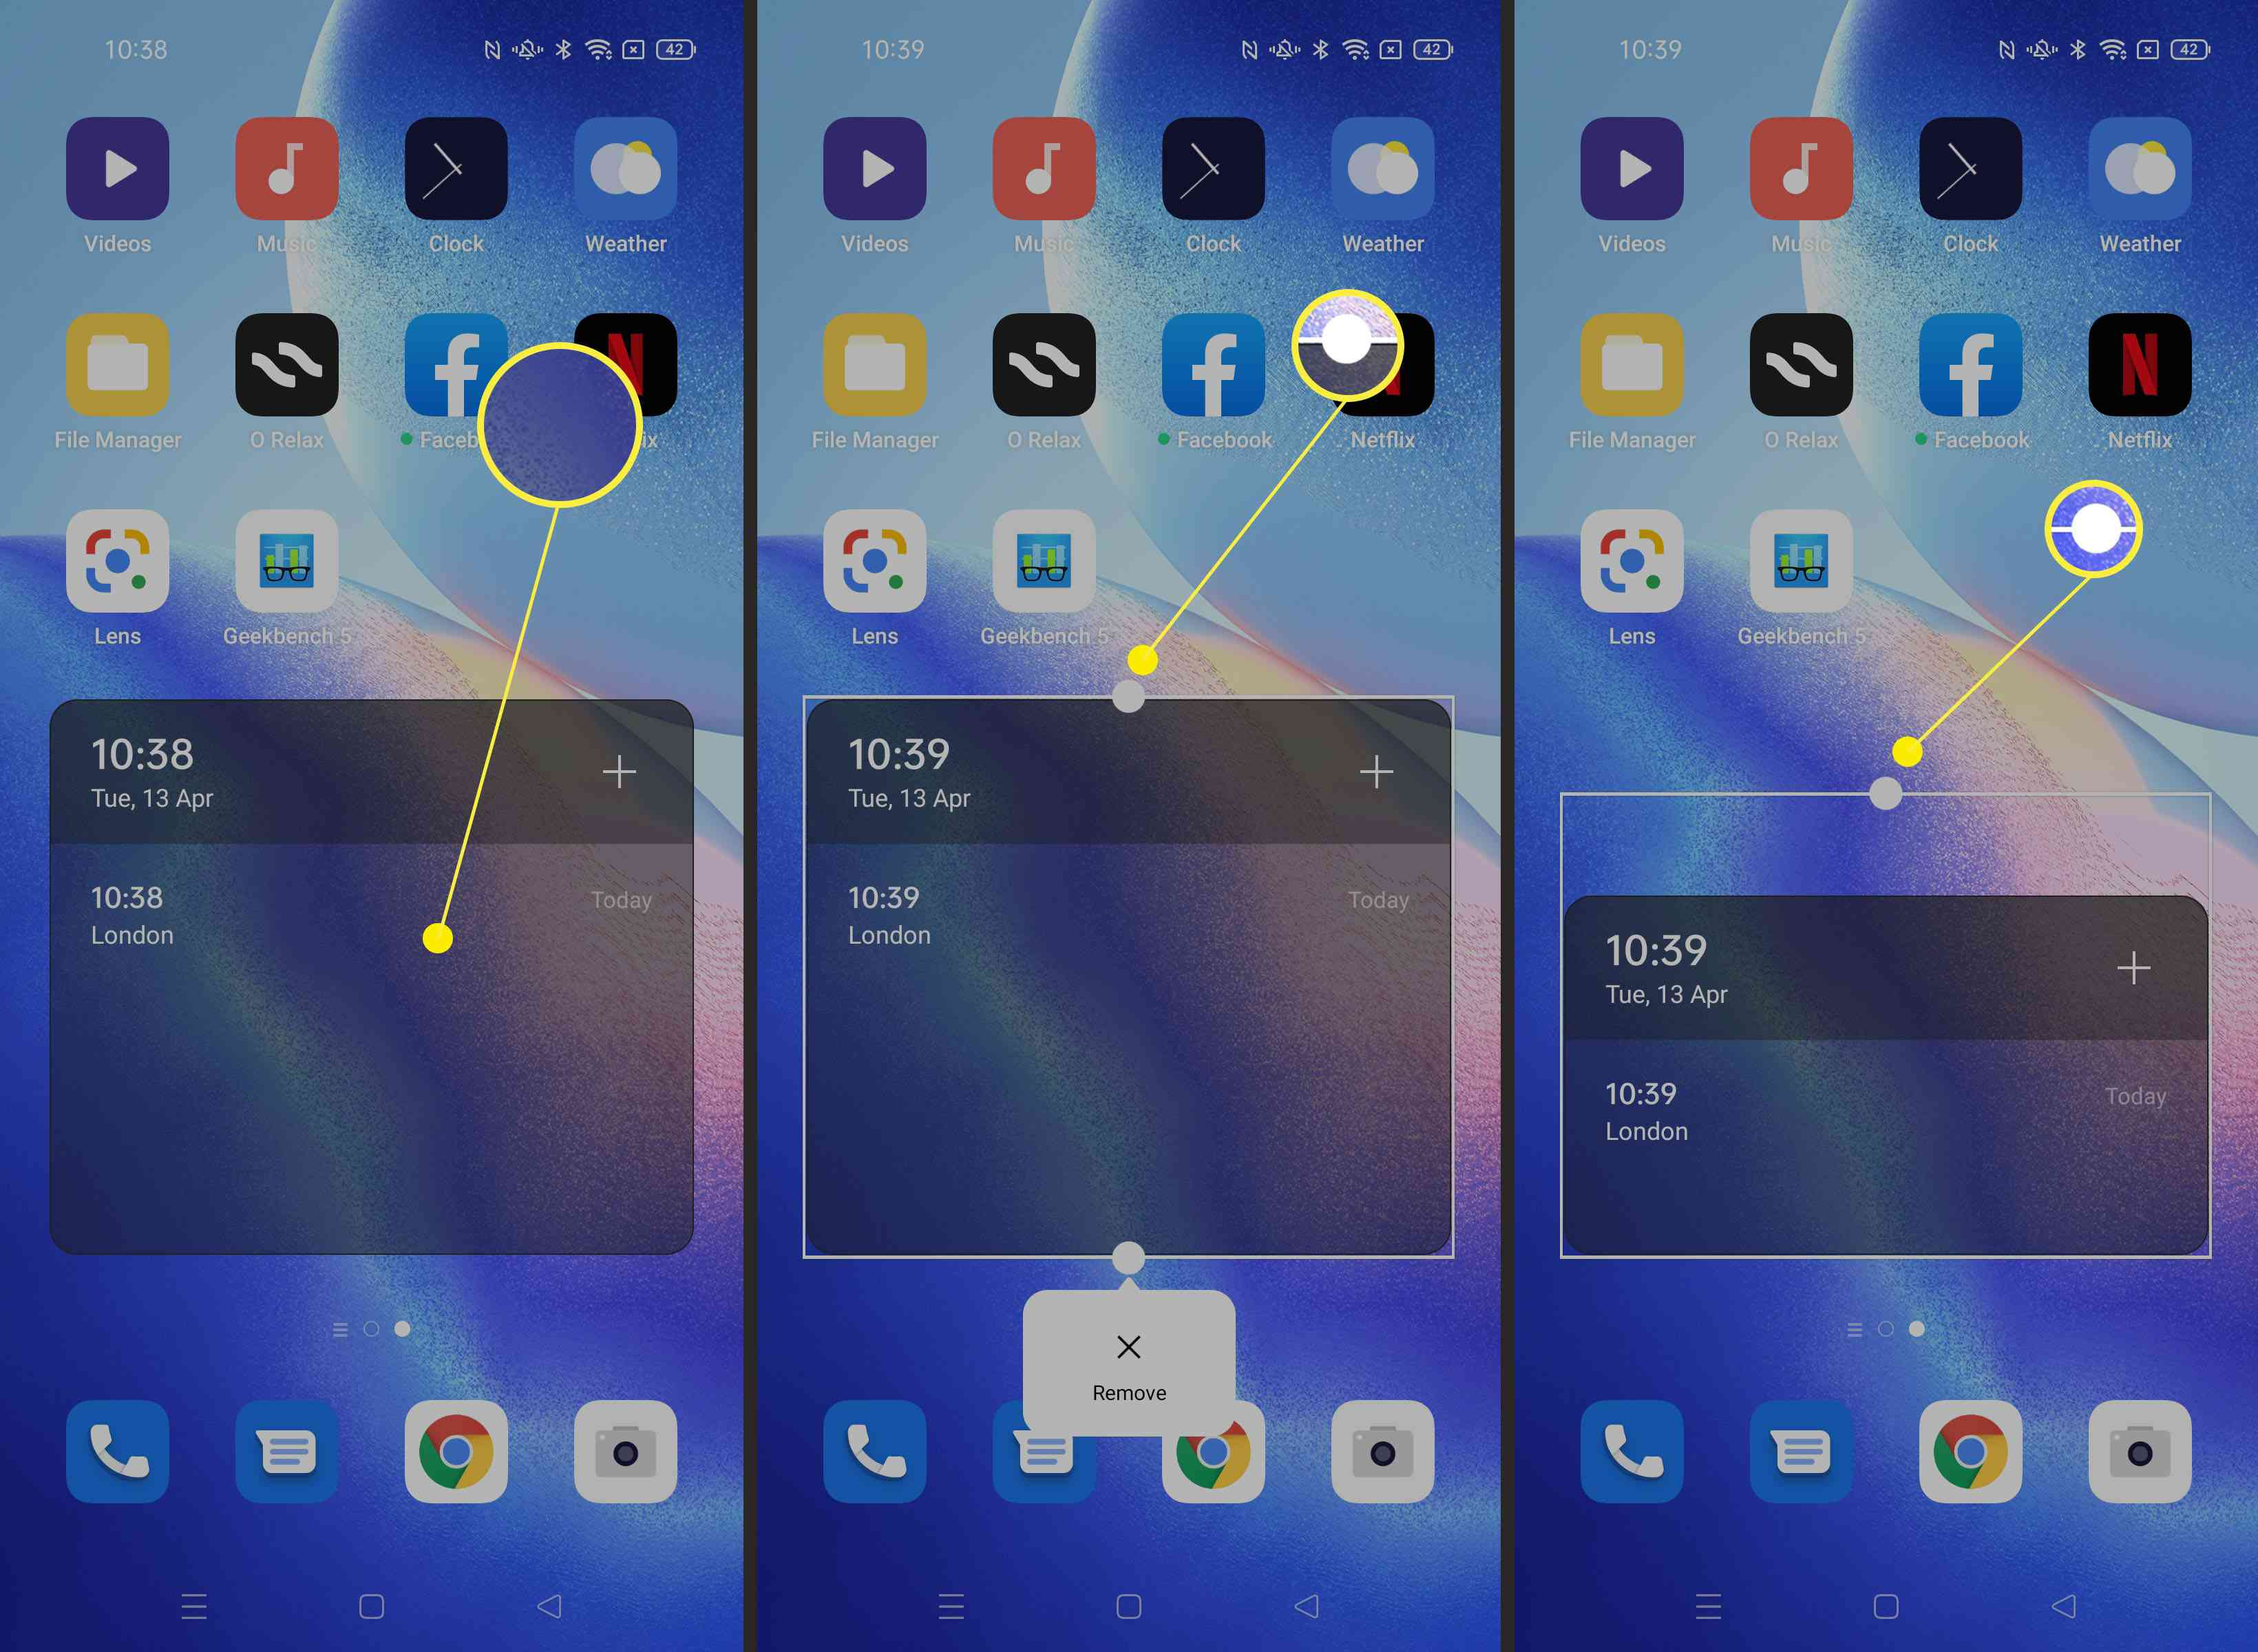 Steps required to resize a widget on an Android phone